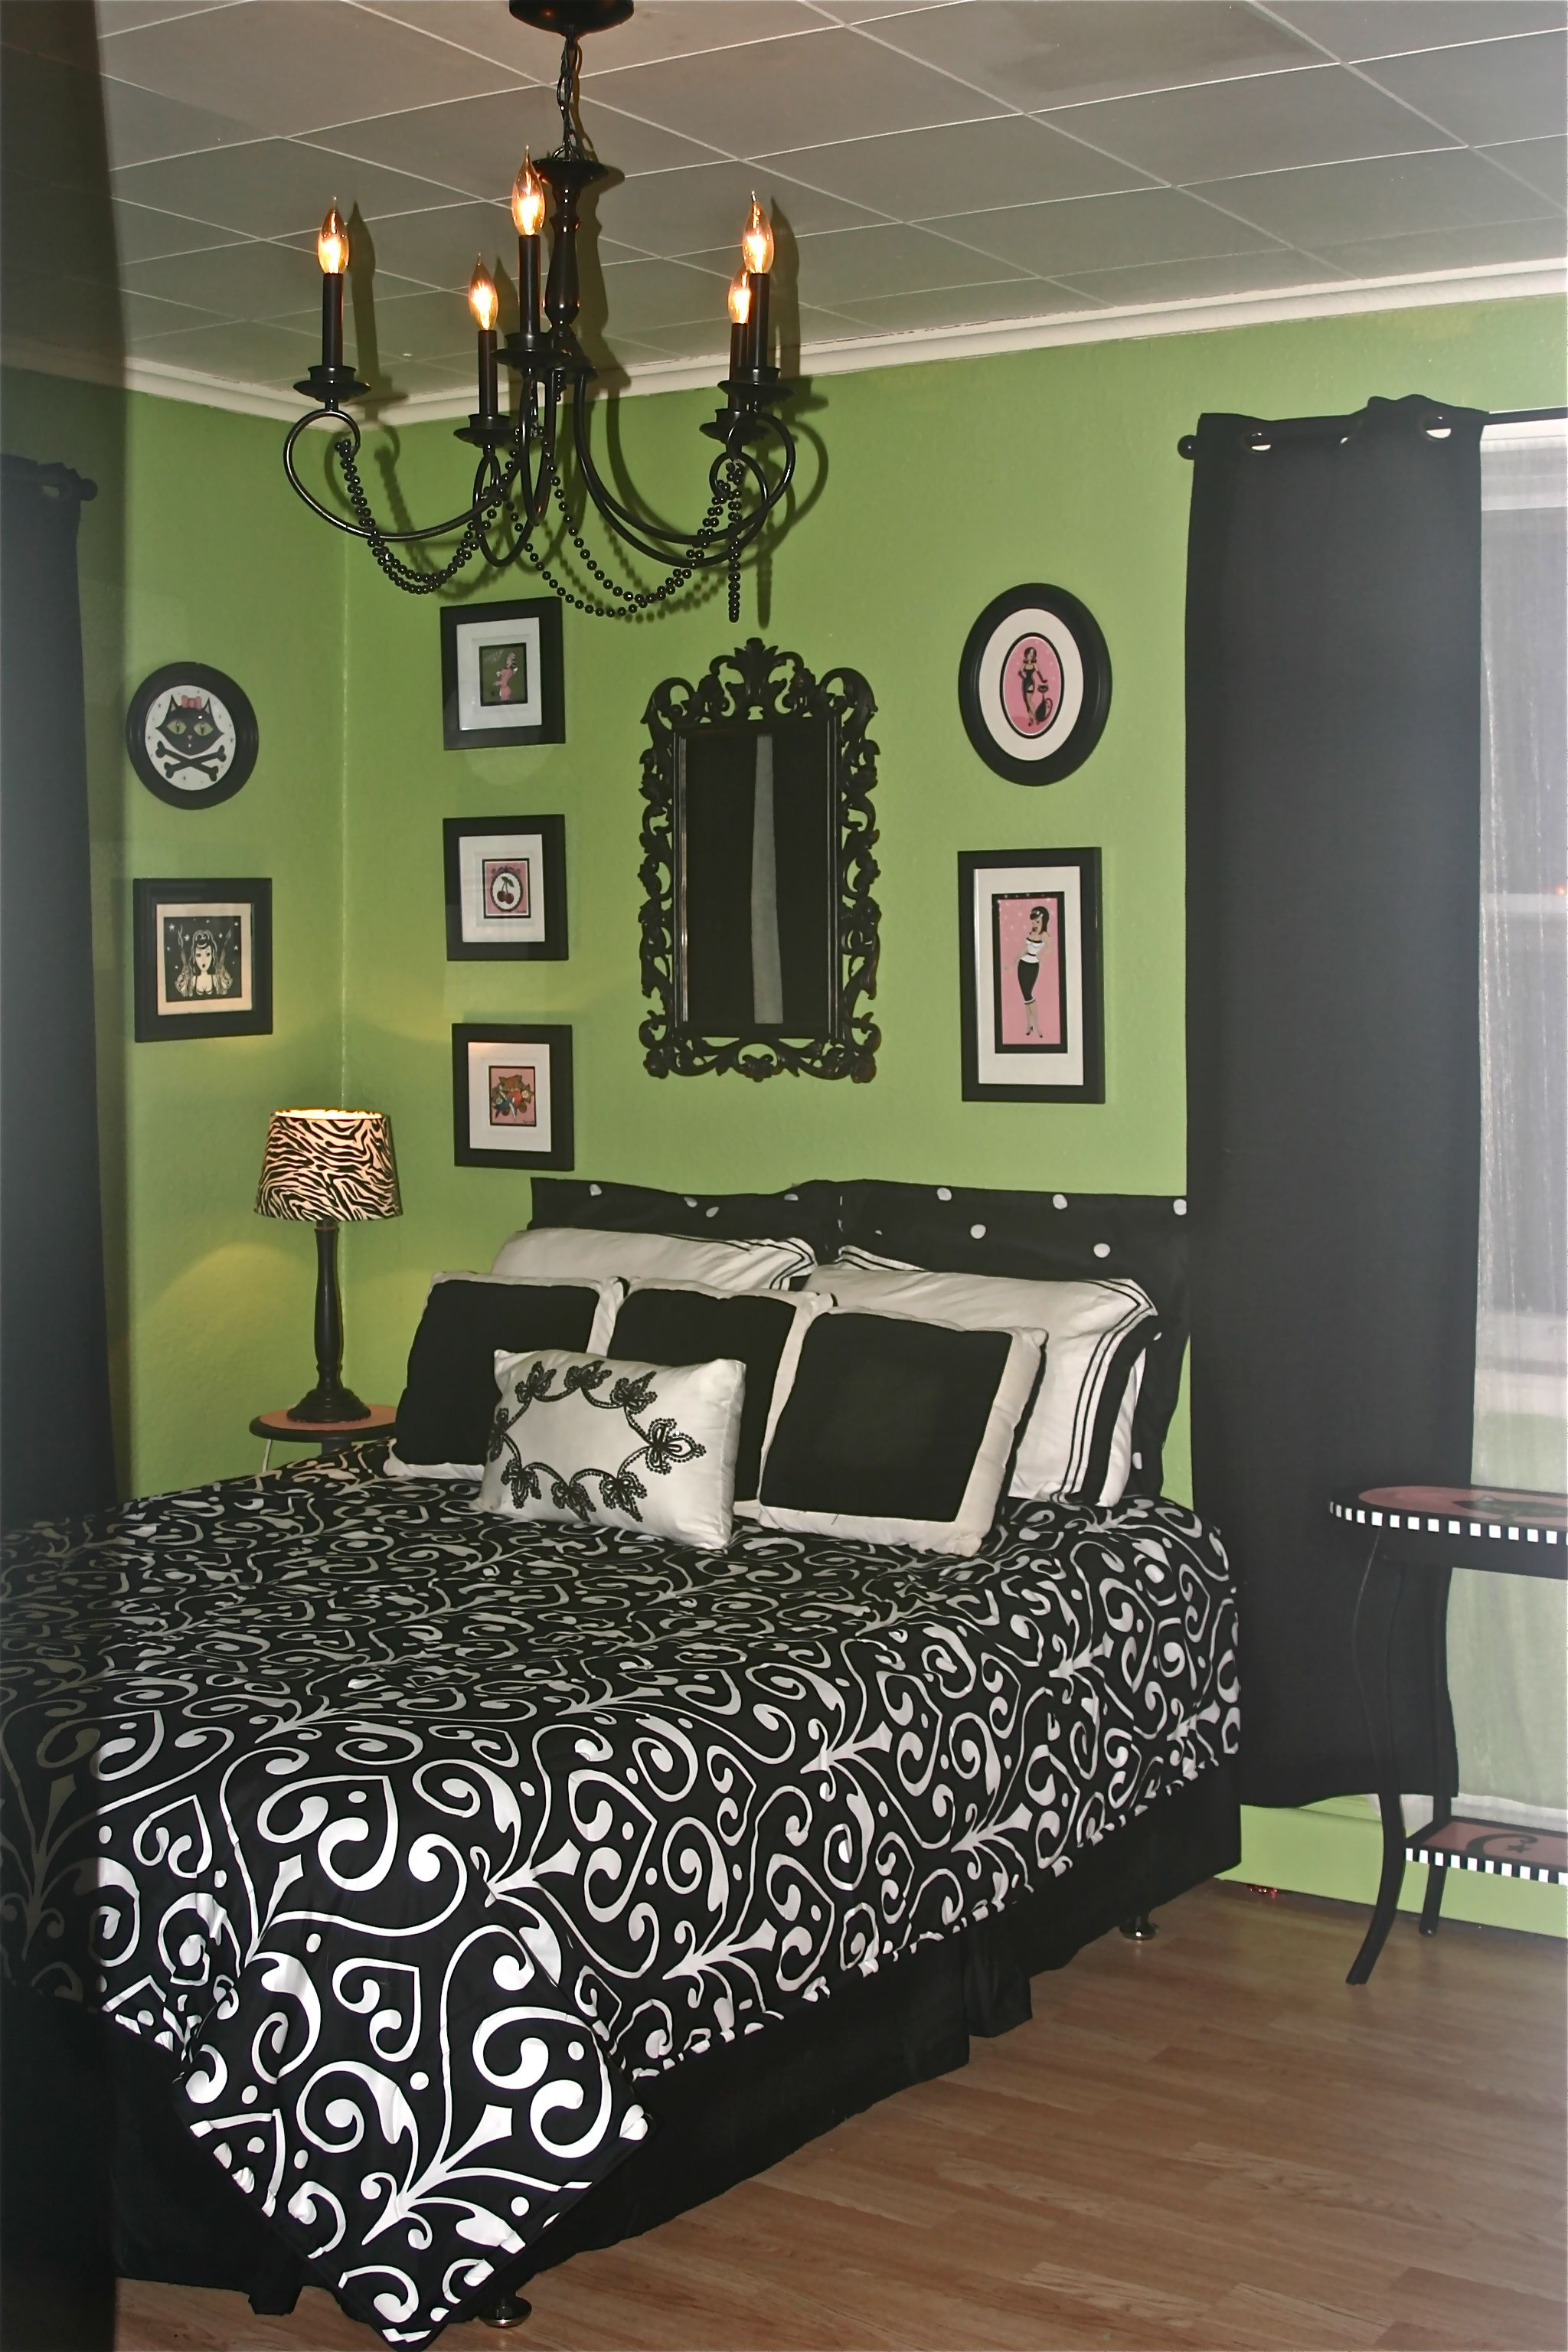 Green, Black & Pink Bedroom